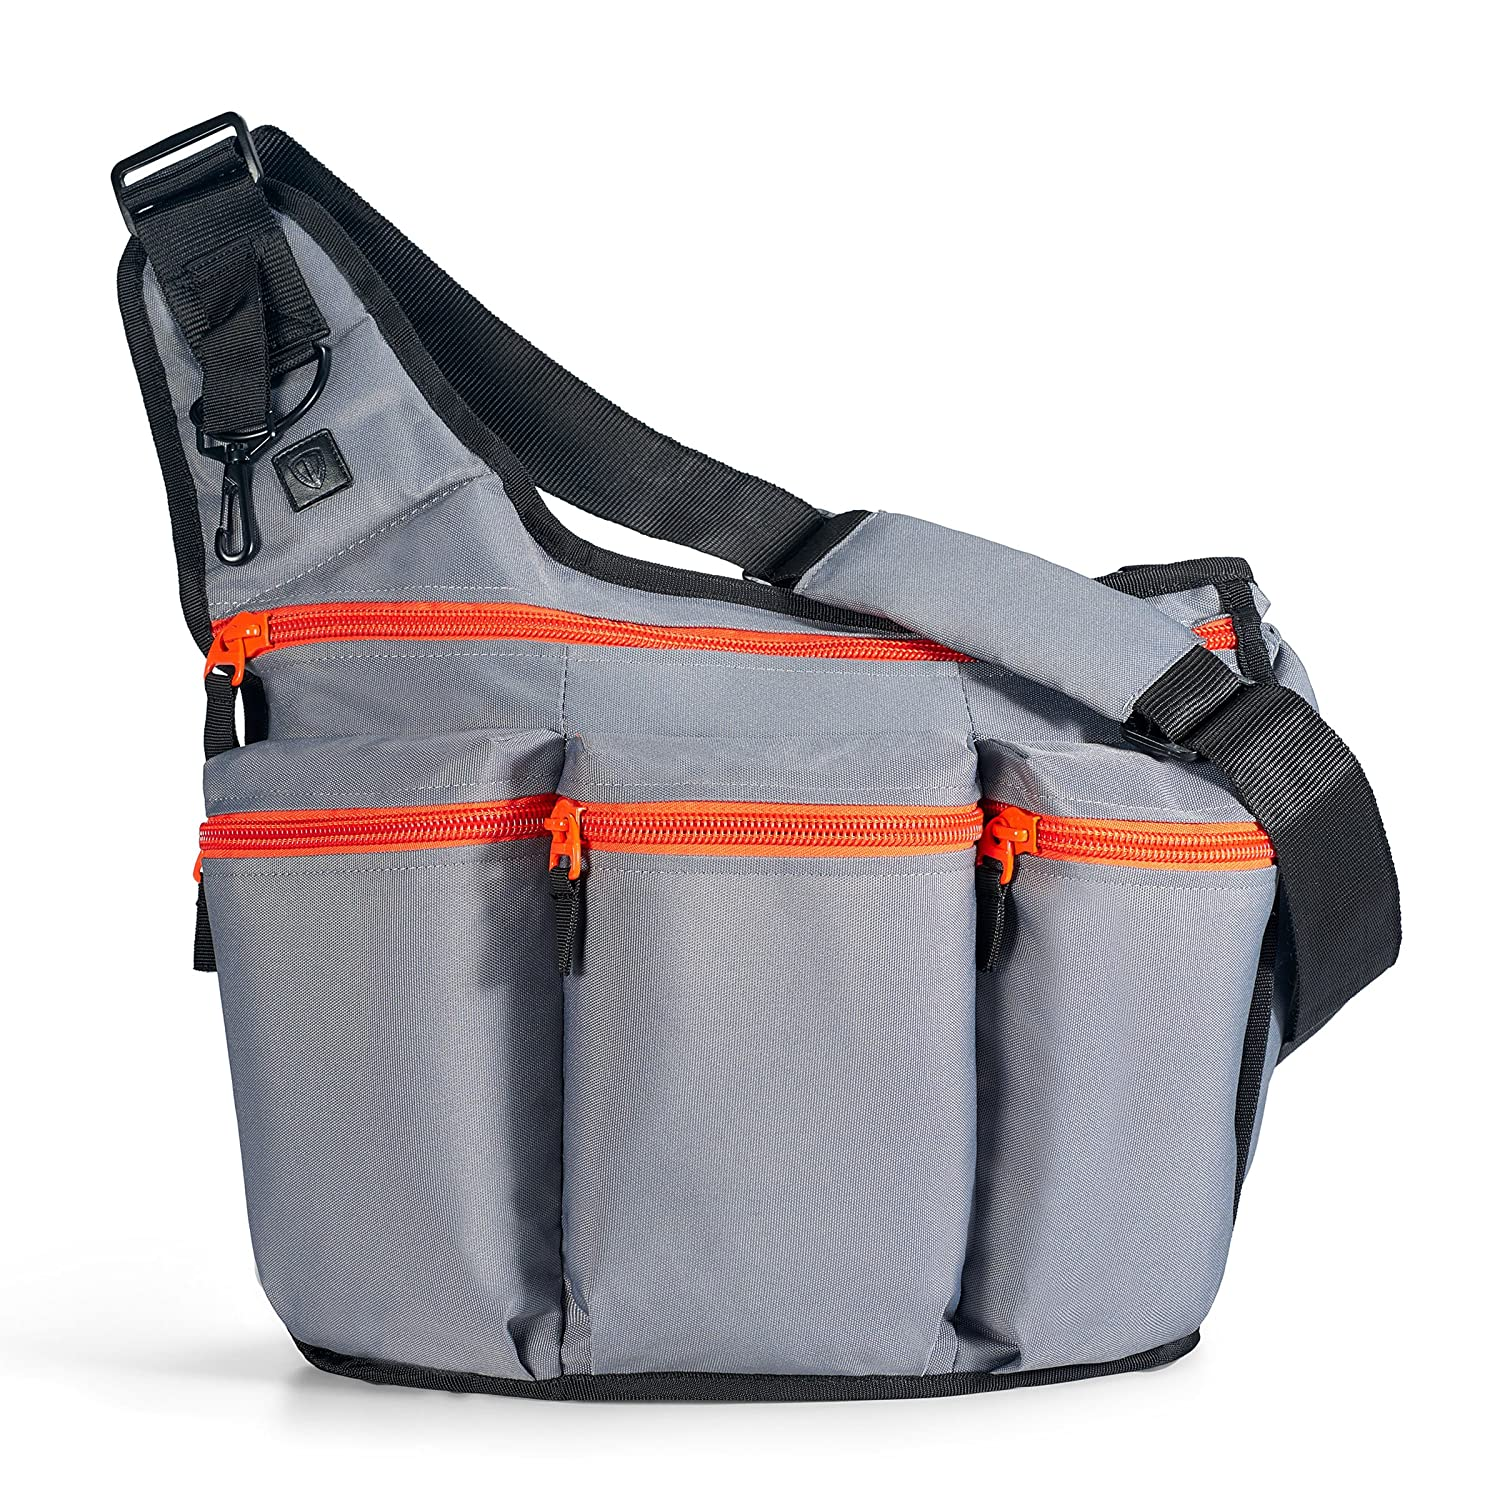 【レビューで送料無料】 Diaper Dude - D400 - Sac à - Langer Sac - Orange Messanger I - Gris - Fermeture - Orange B000G2B2QS, ユイチョウ:5b9ec0c6 --- arianechie.dominiotemporario.com